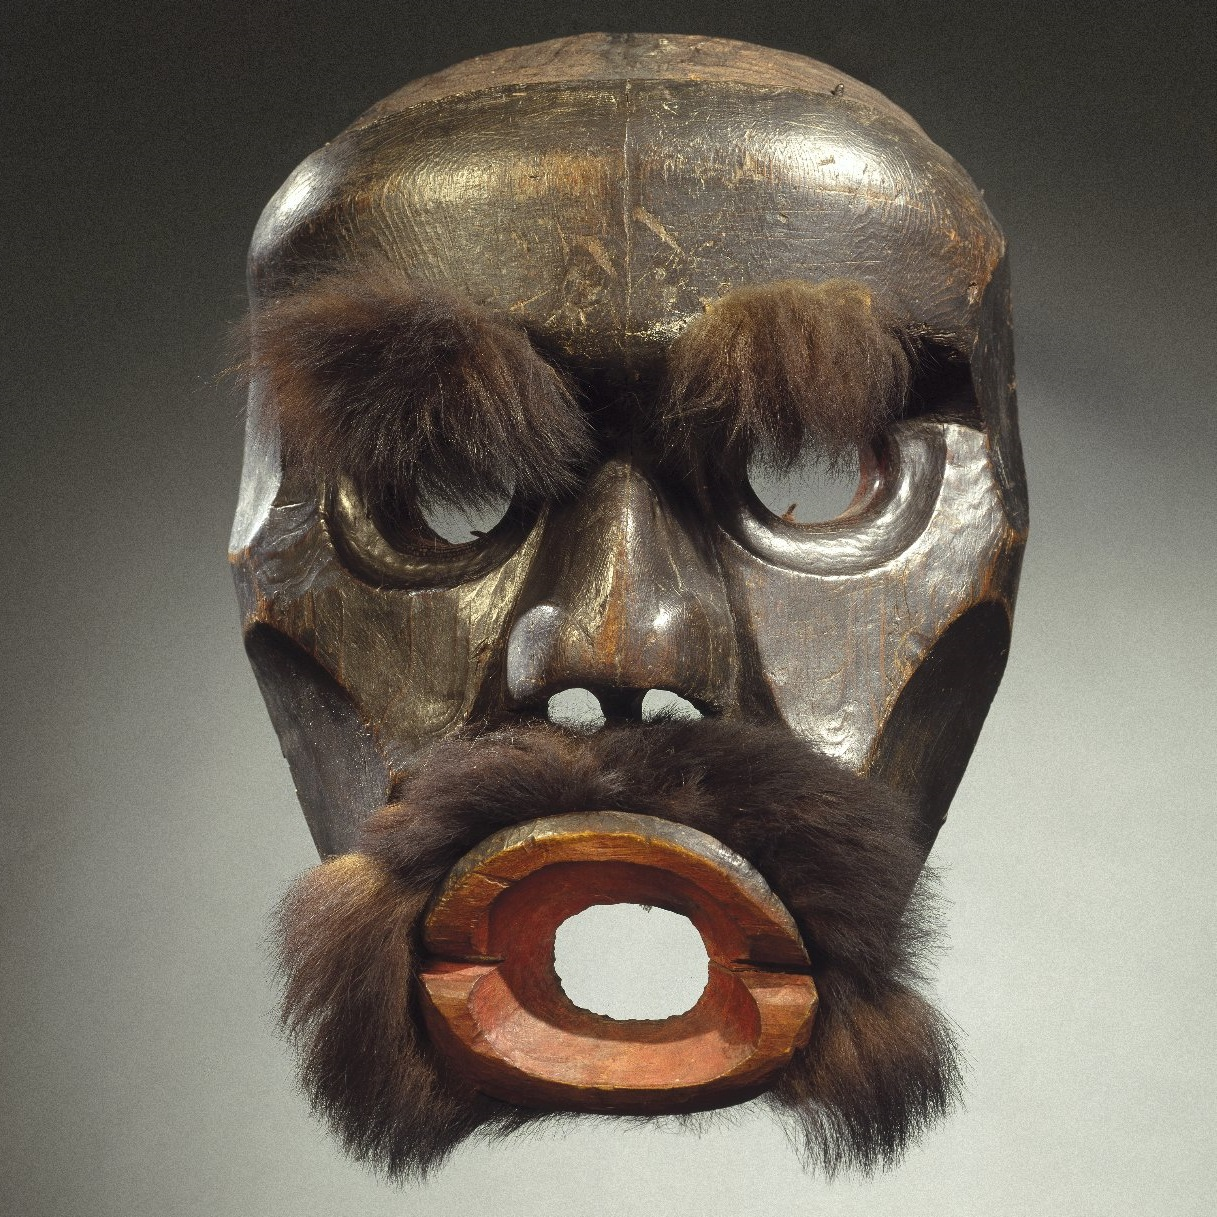 <p><i>Dzunu<ins>k</ins>wa (Cannibal Woman) Mask</i>. Kwakw<ins>a</ins>k<ins>a</ins>'wakw artist, 19th century. Knight Inlet, Vancouver Island, British Columbia, Canada. Cedar wood, fur (black bear?), hide, pigment, iron nails. Brooklyn Museum, Gift of Herman Stutzer, 15.513.1</p>